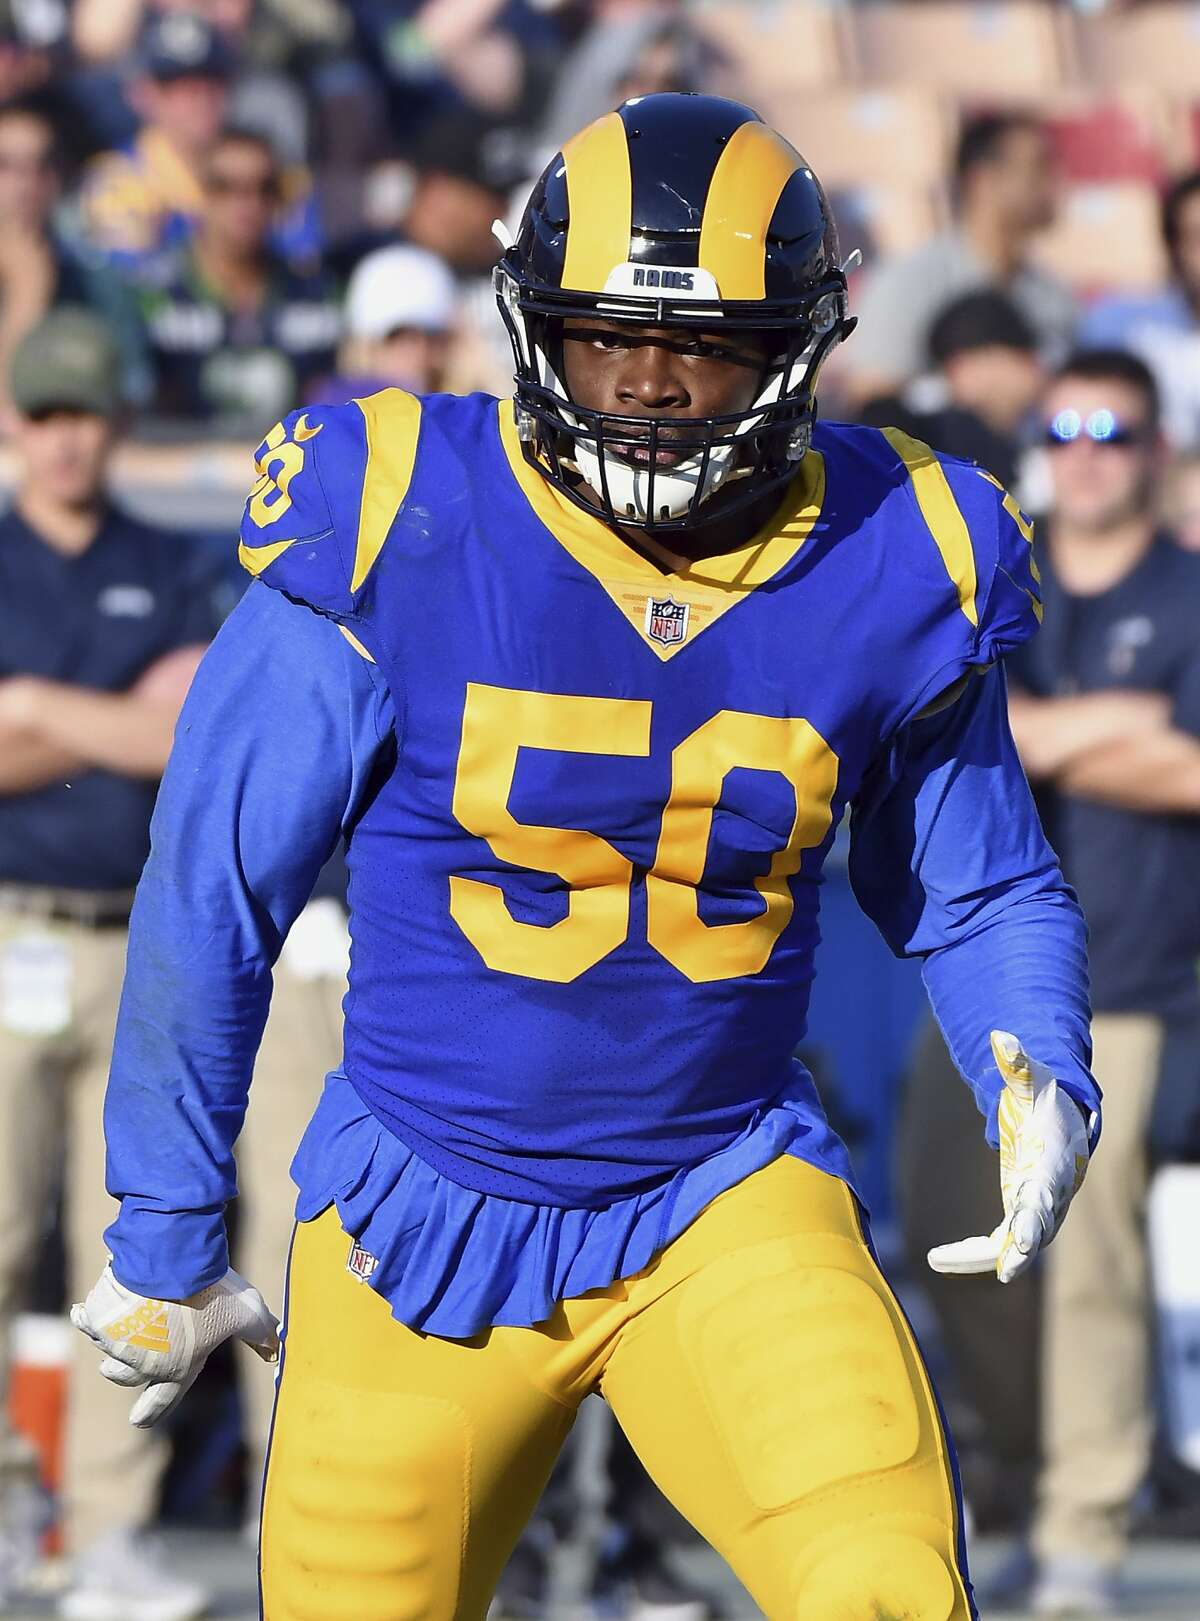 Samson Ebukam, who didn't miss a game in his first four NFL seasons with the Rams, has agreed to a two-year deal with the 49ers.